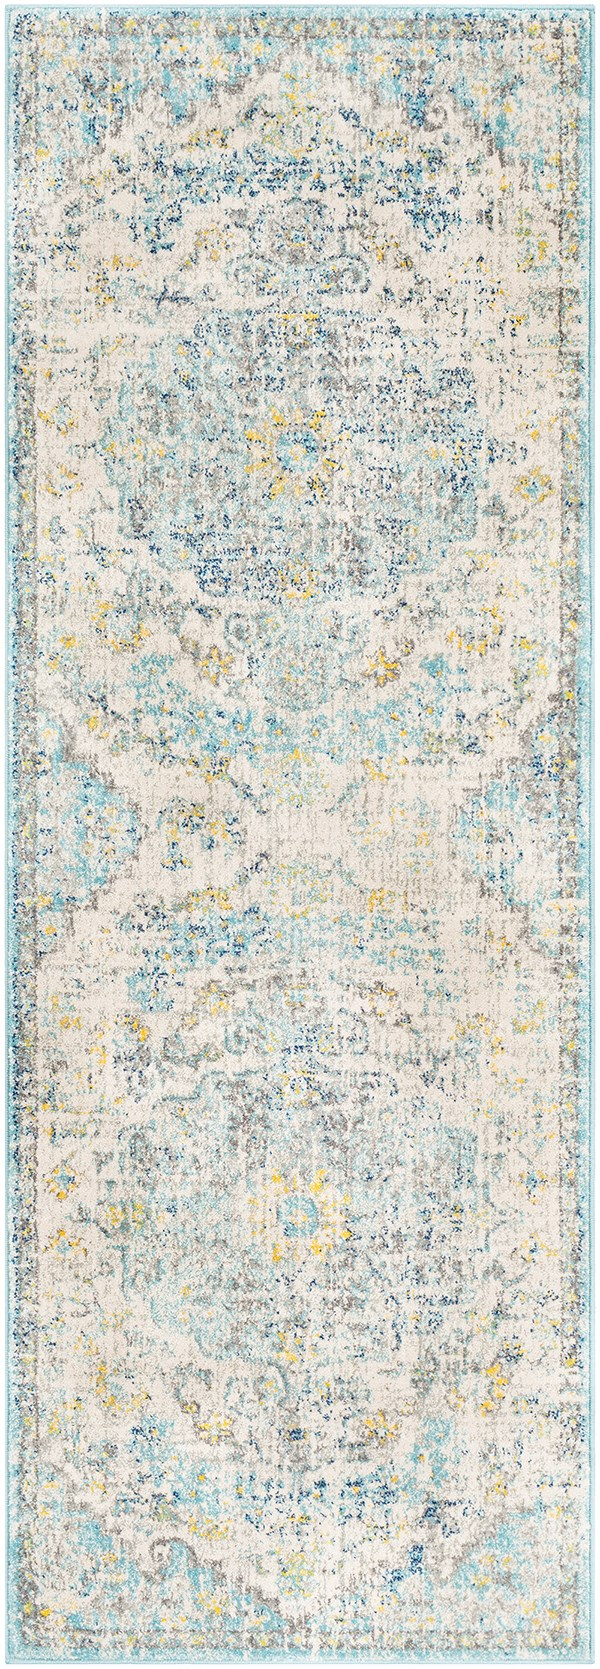 Beige, Saffron, Light Gray Vintage / Overdyed Area Rug